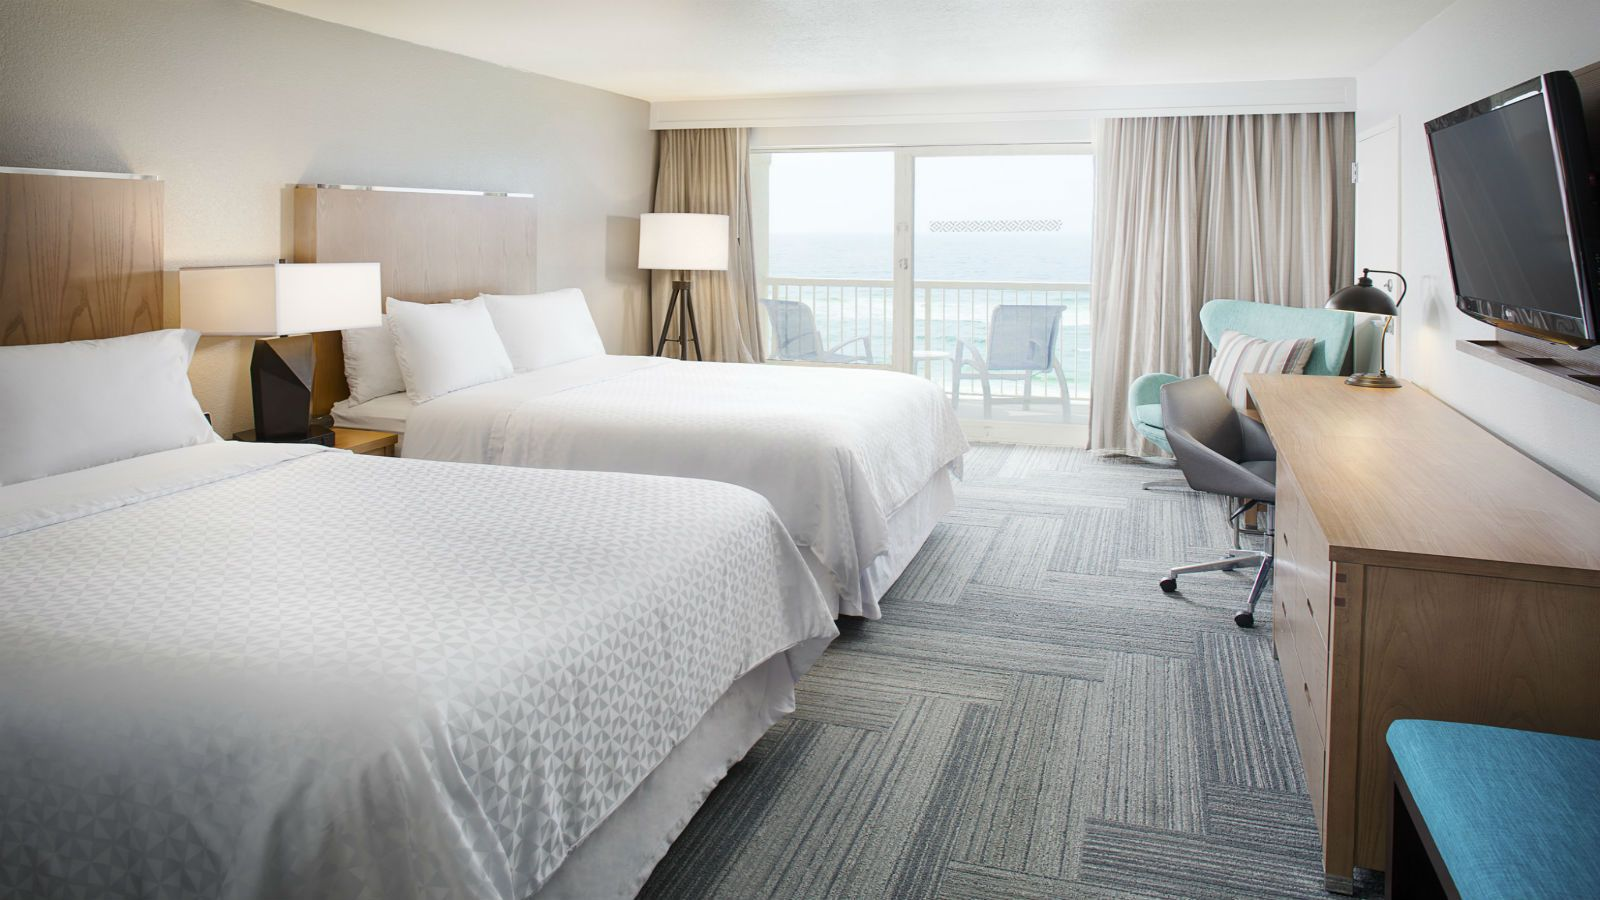 Fort Walton Beach Accommodations - Deluxe Beachfront Room